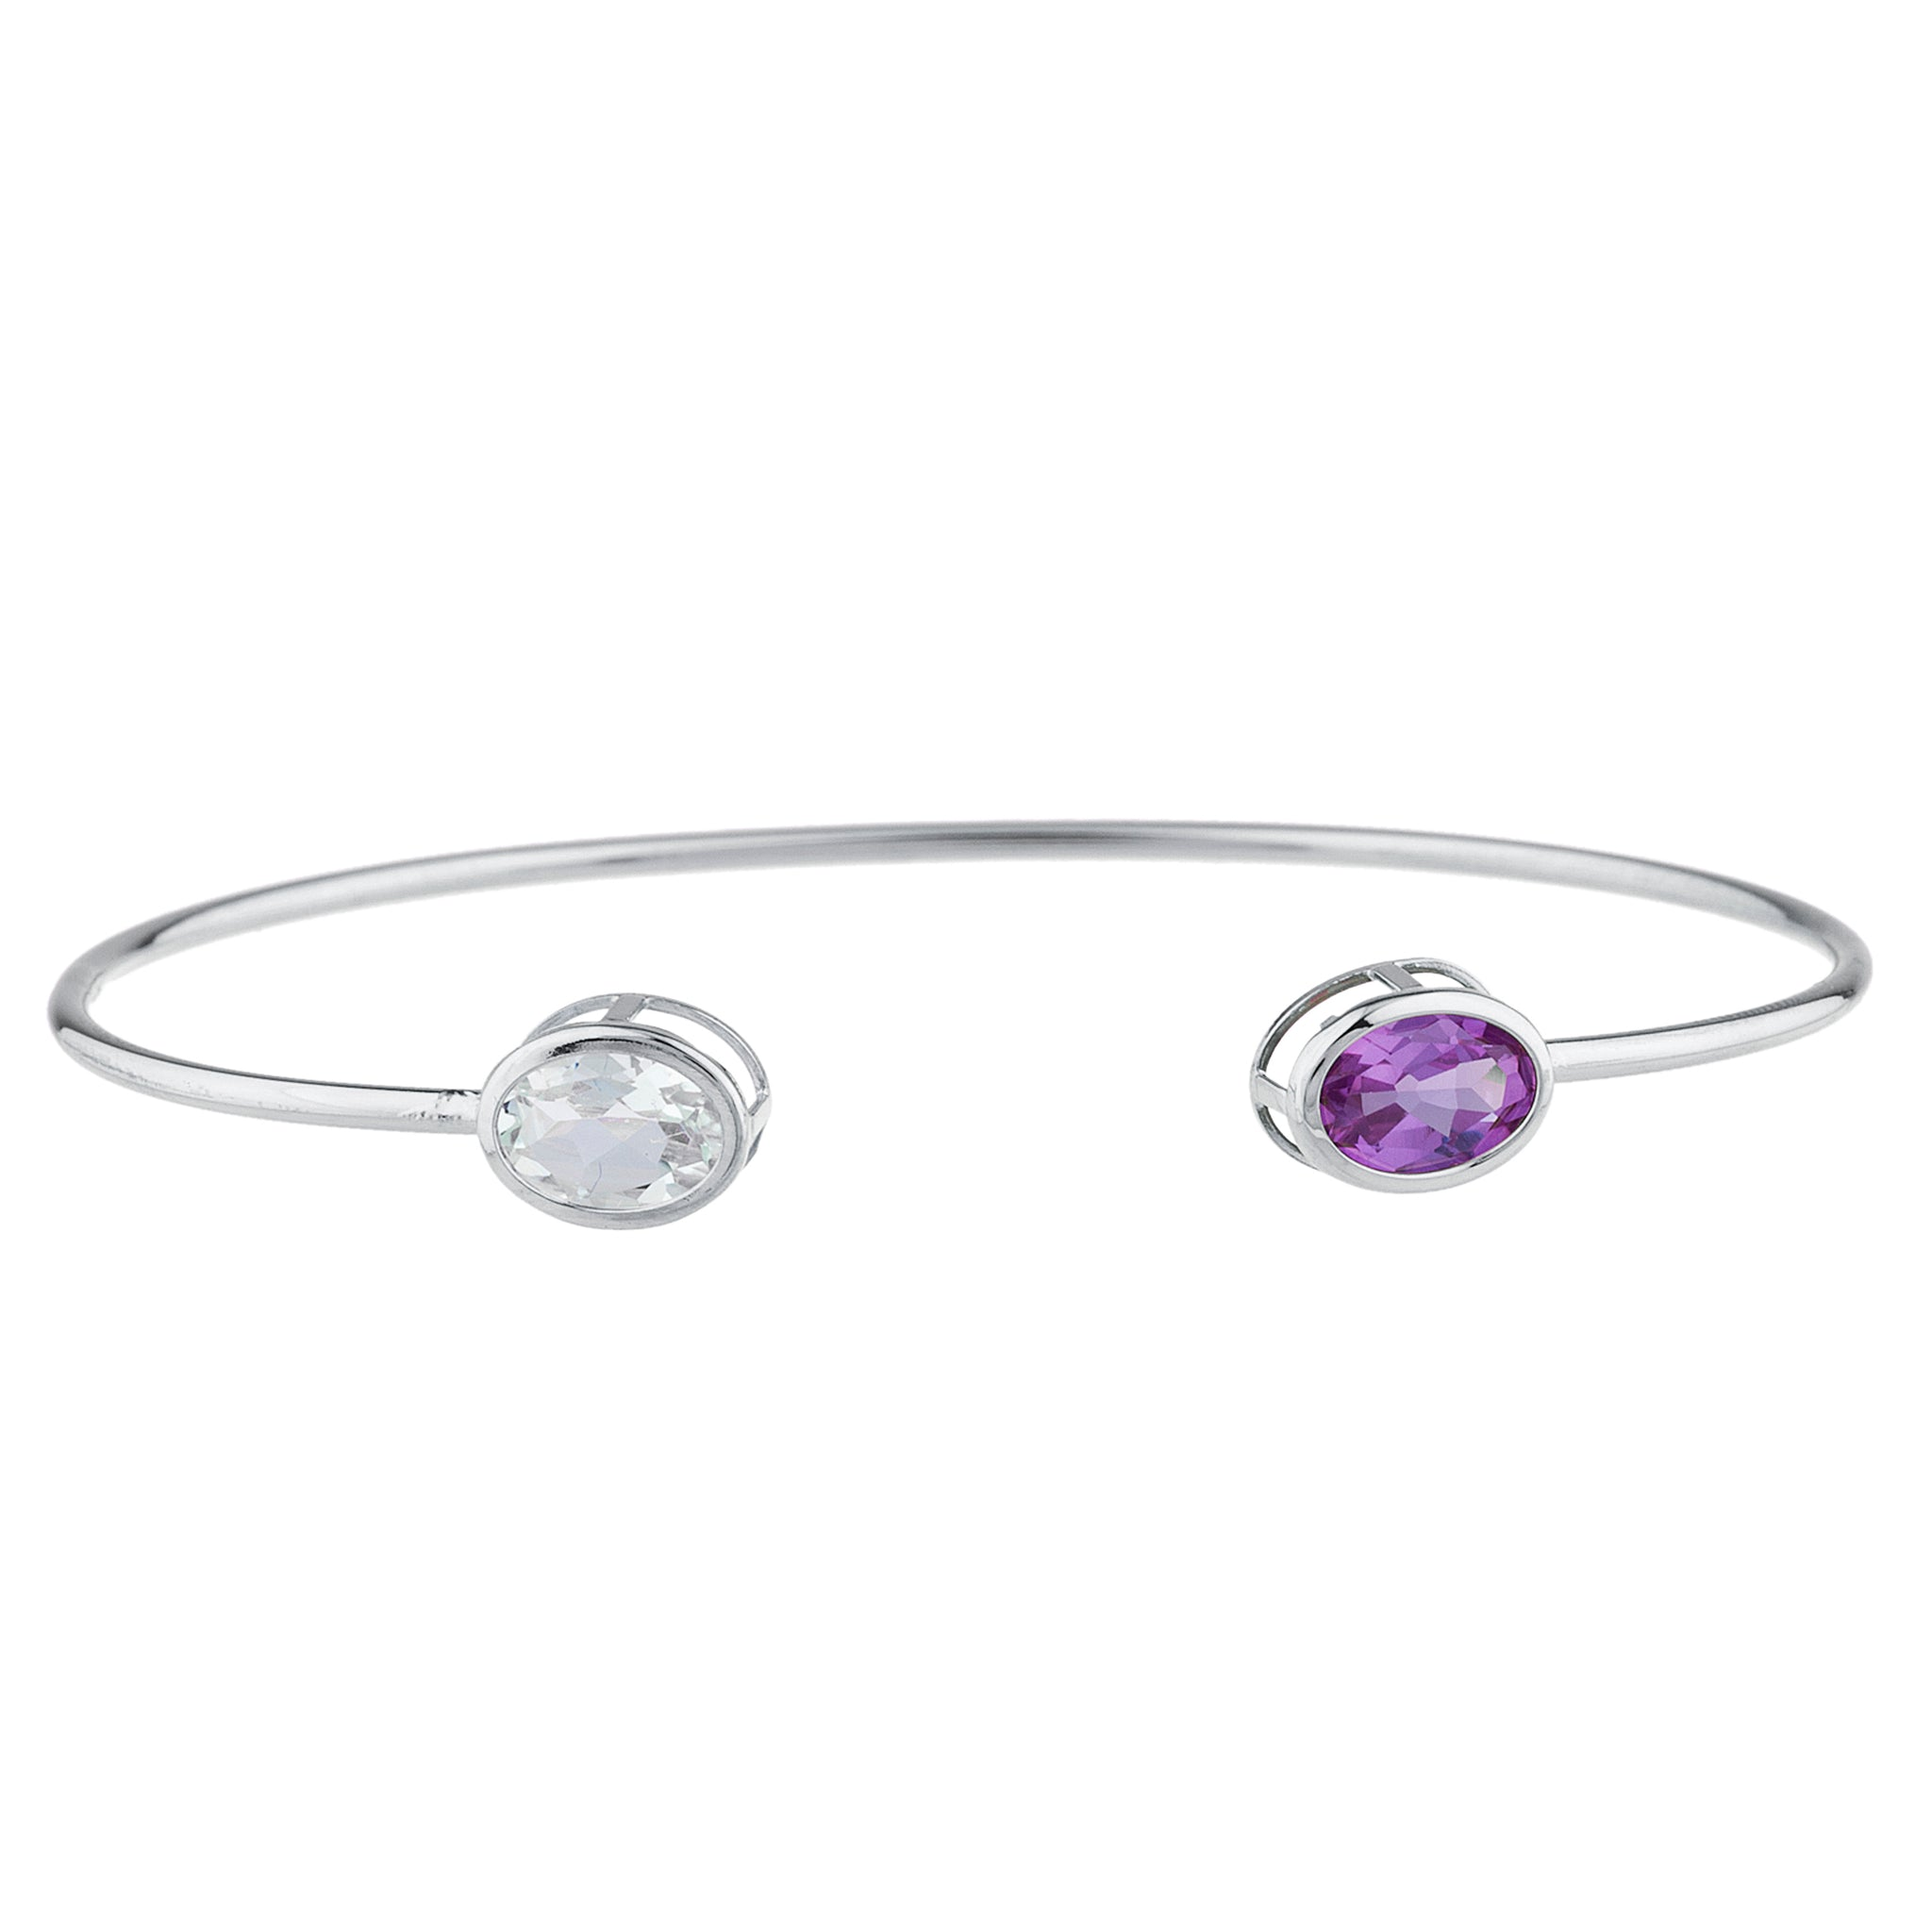 Aquamarine & Alexandrite Oval Bezel Bangle Bracelet .925 Sterling Silver